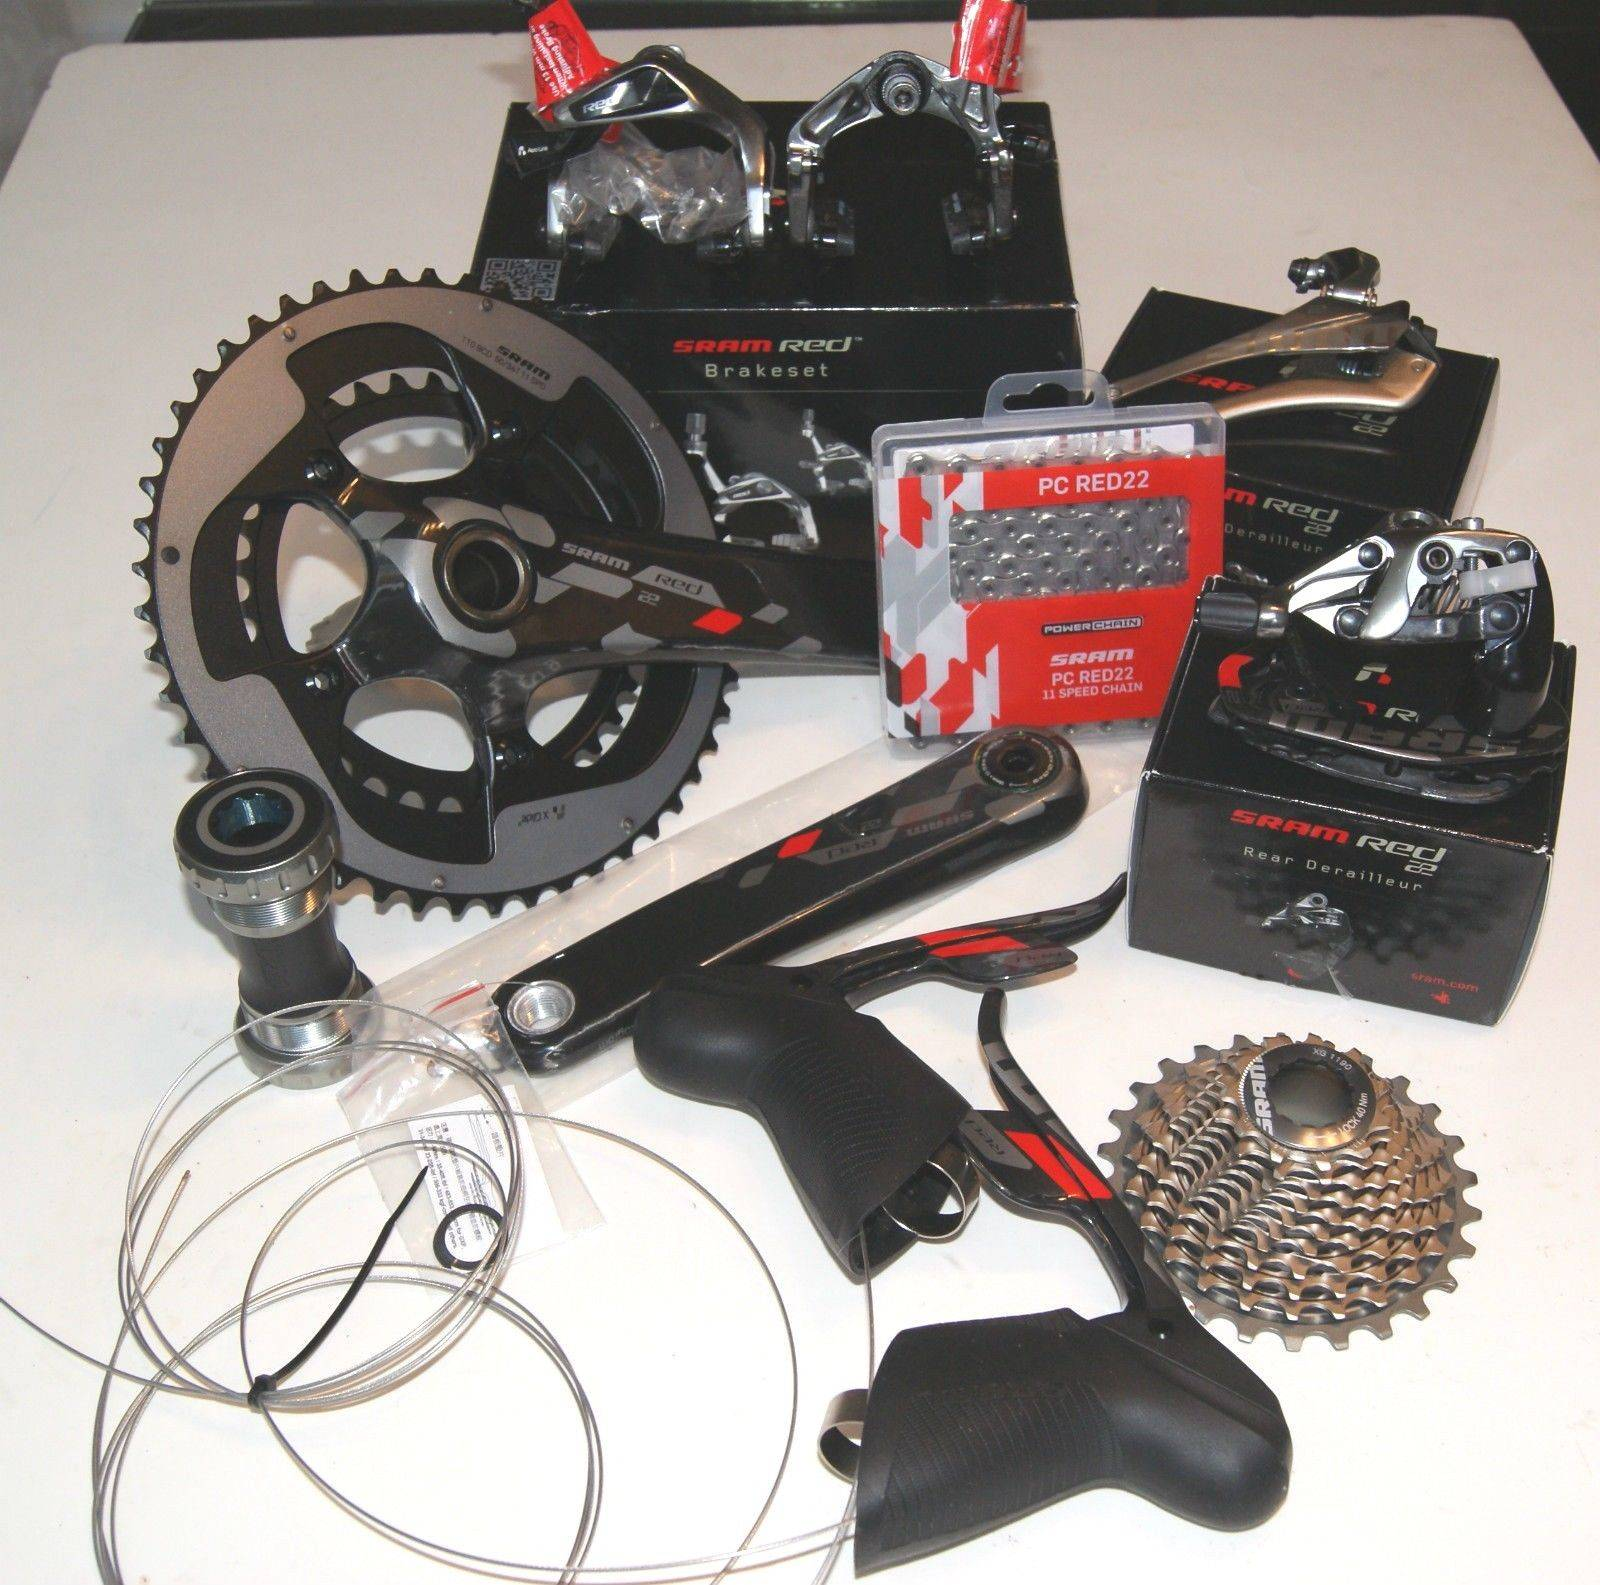 New 2014 SRAM RED 22 8-Piece GXP Groupset Kit